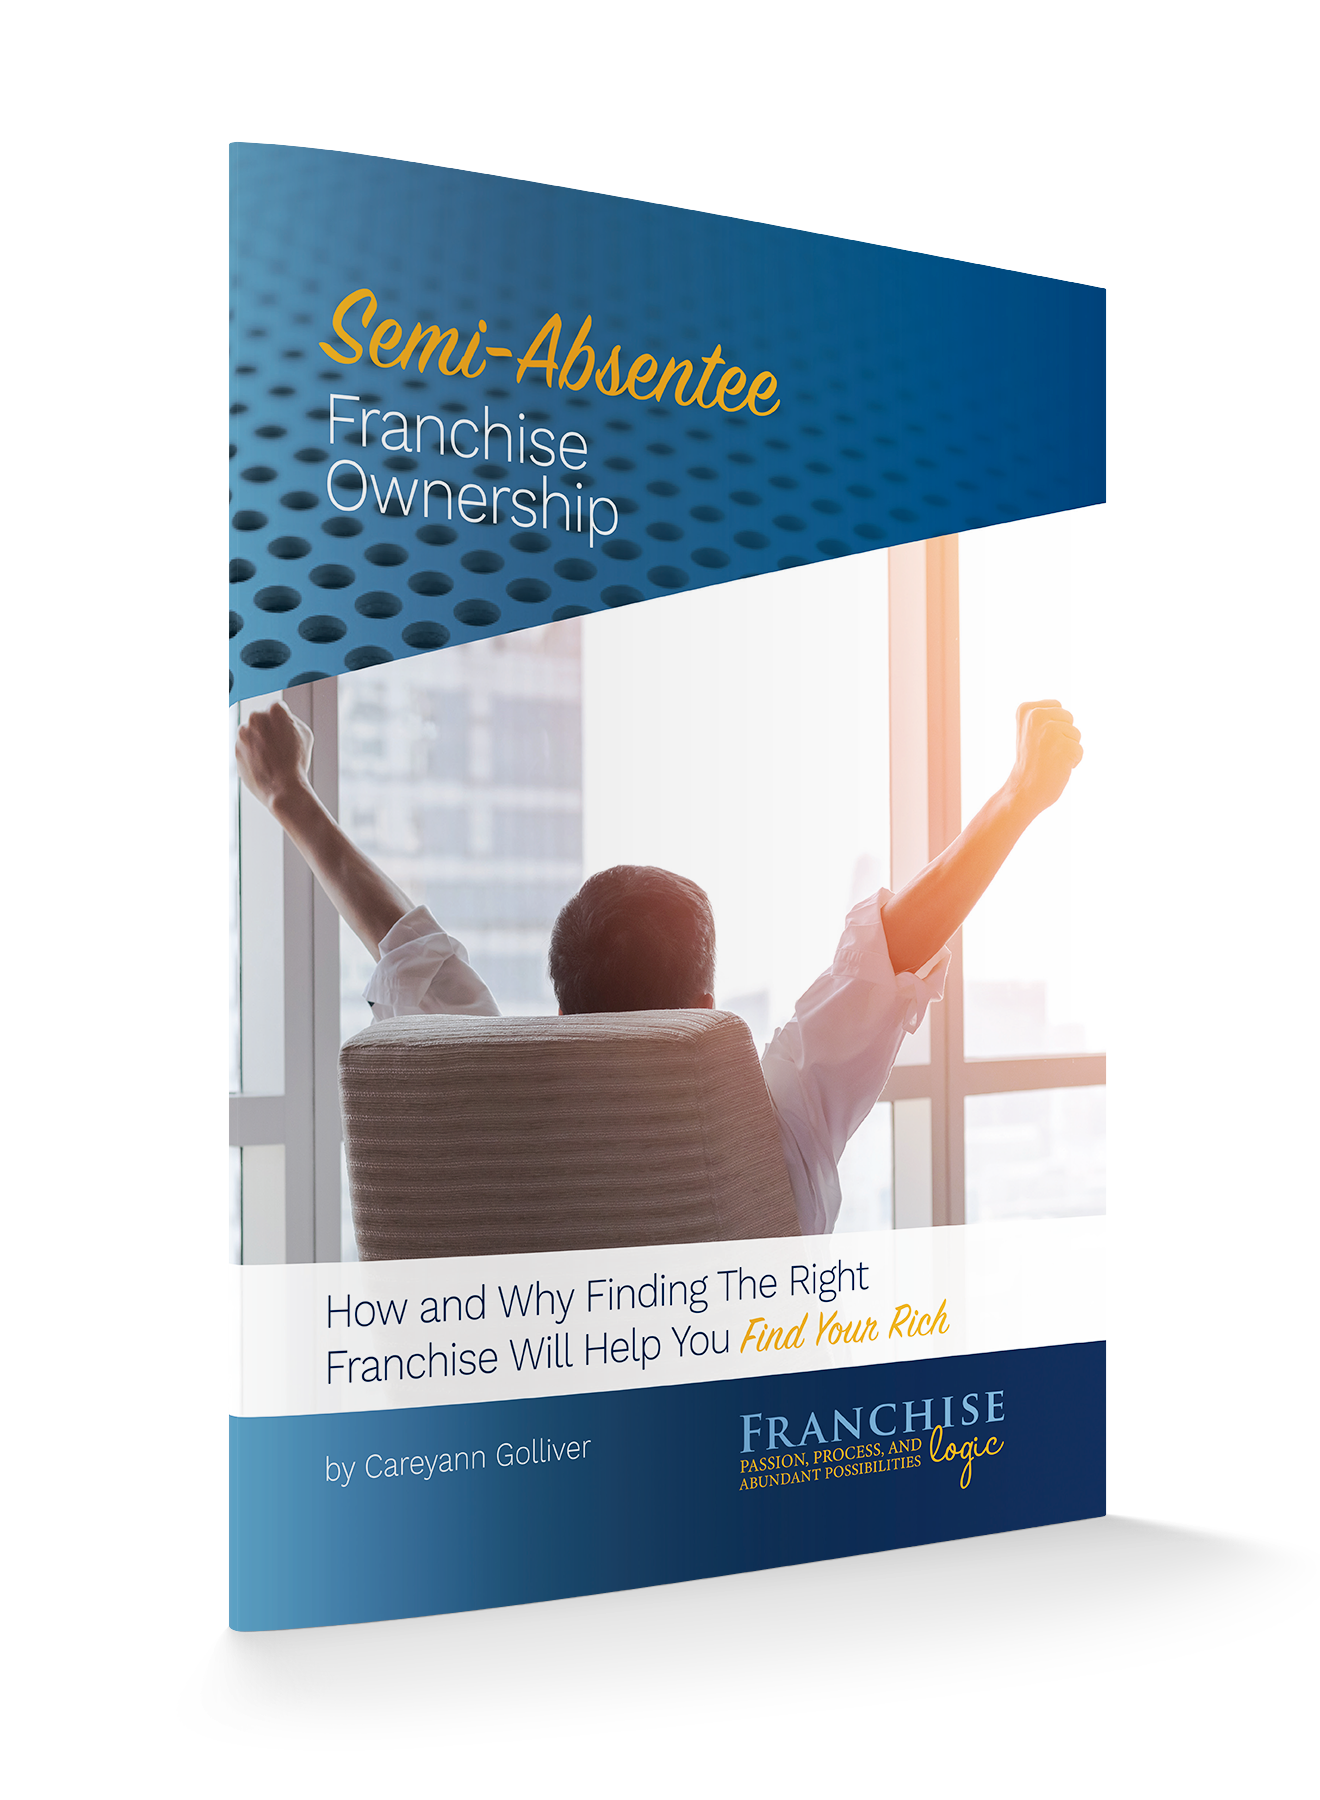 eBook Semi-Absentee Franchise Ownership